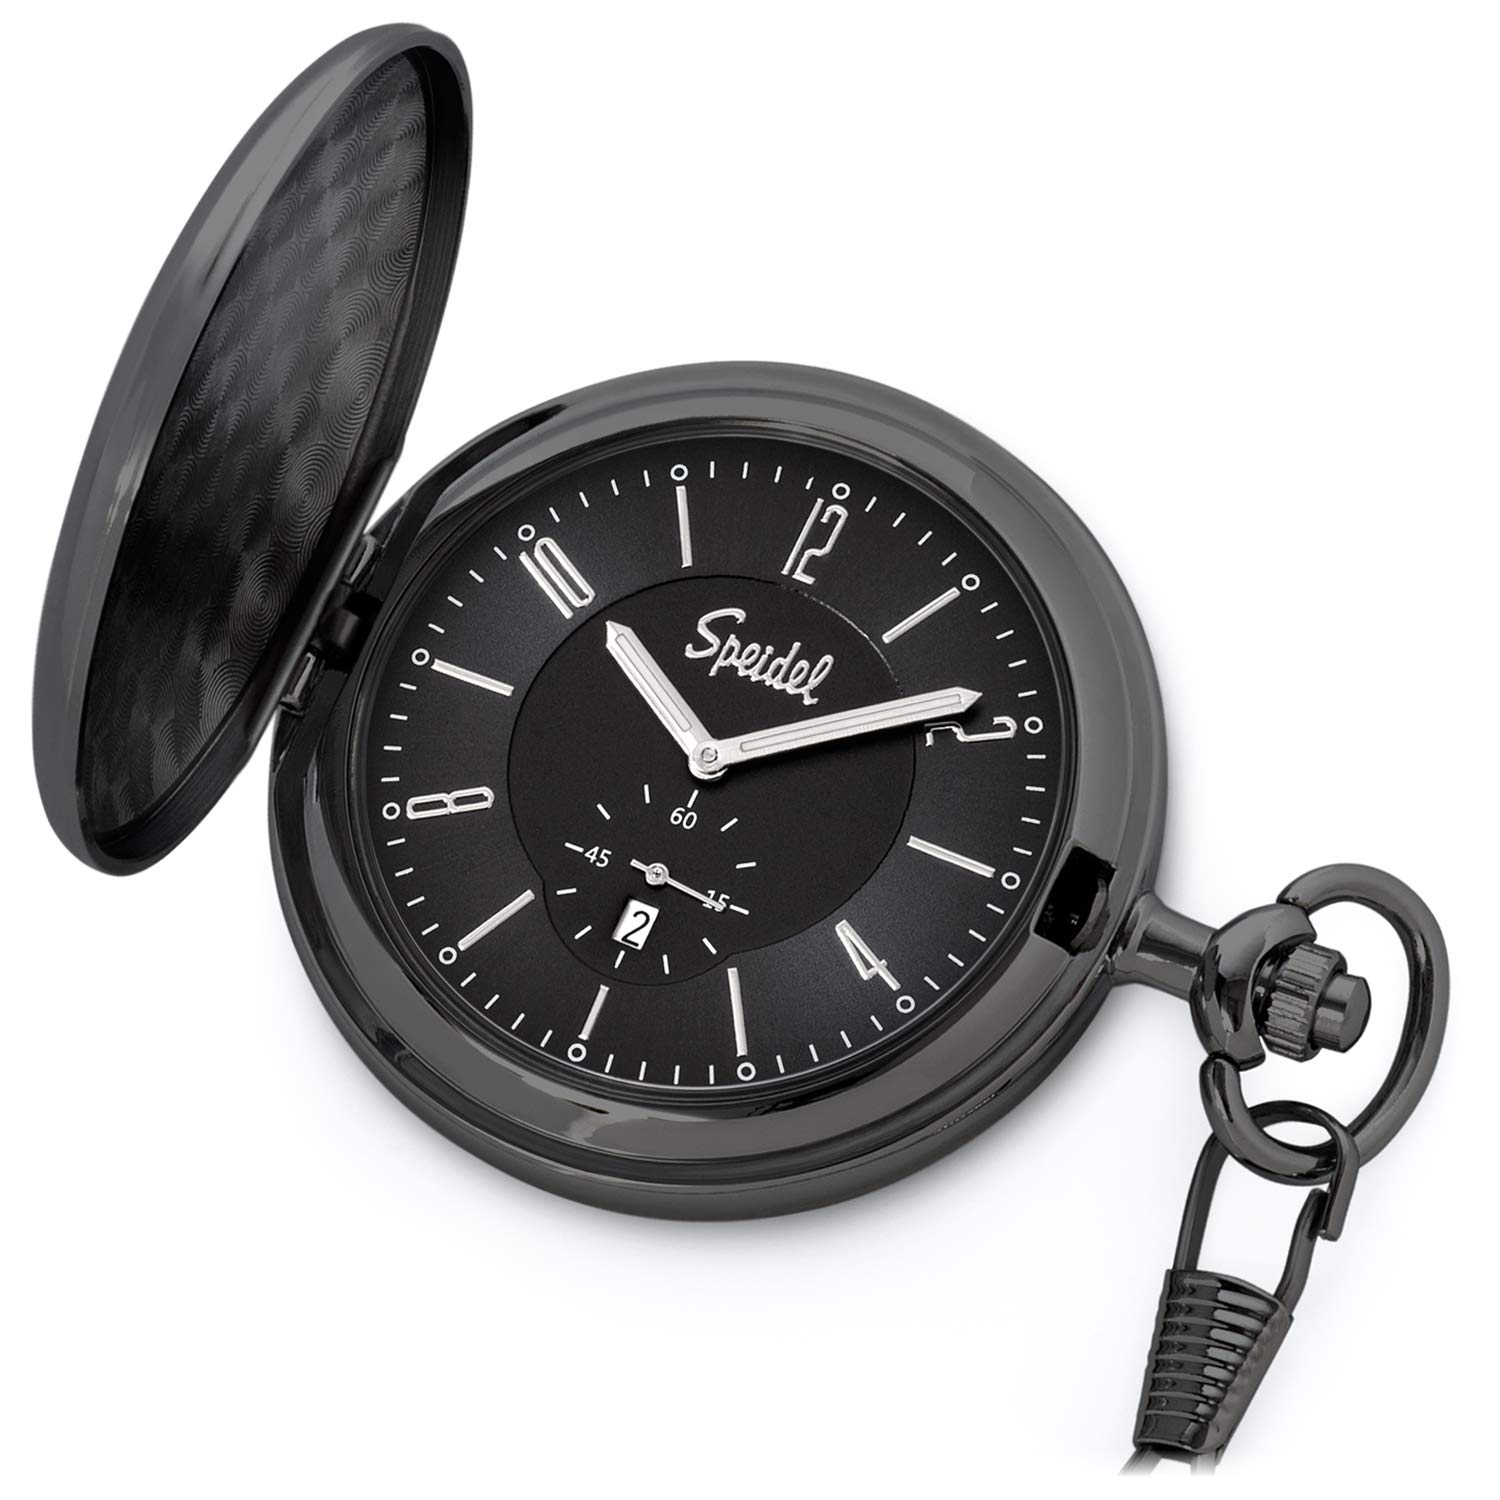 Speidel Classic Brushed Satin Black Engravable Pocket Watch with 14'' Chain, Black Dial, Date Window, Seconds Sub-Dial and Luminous Hands by Speidel